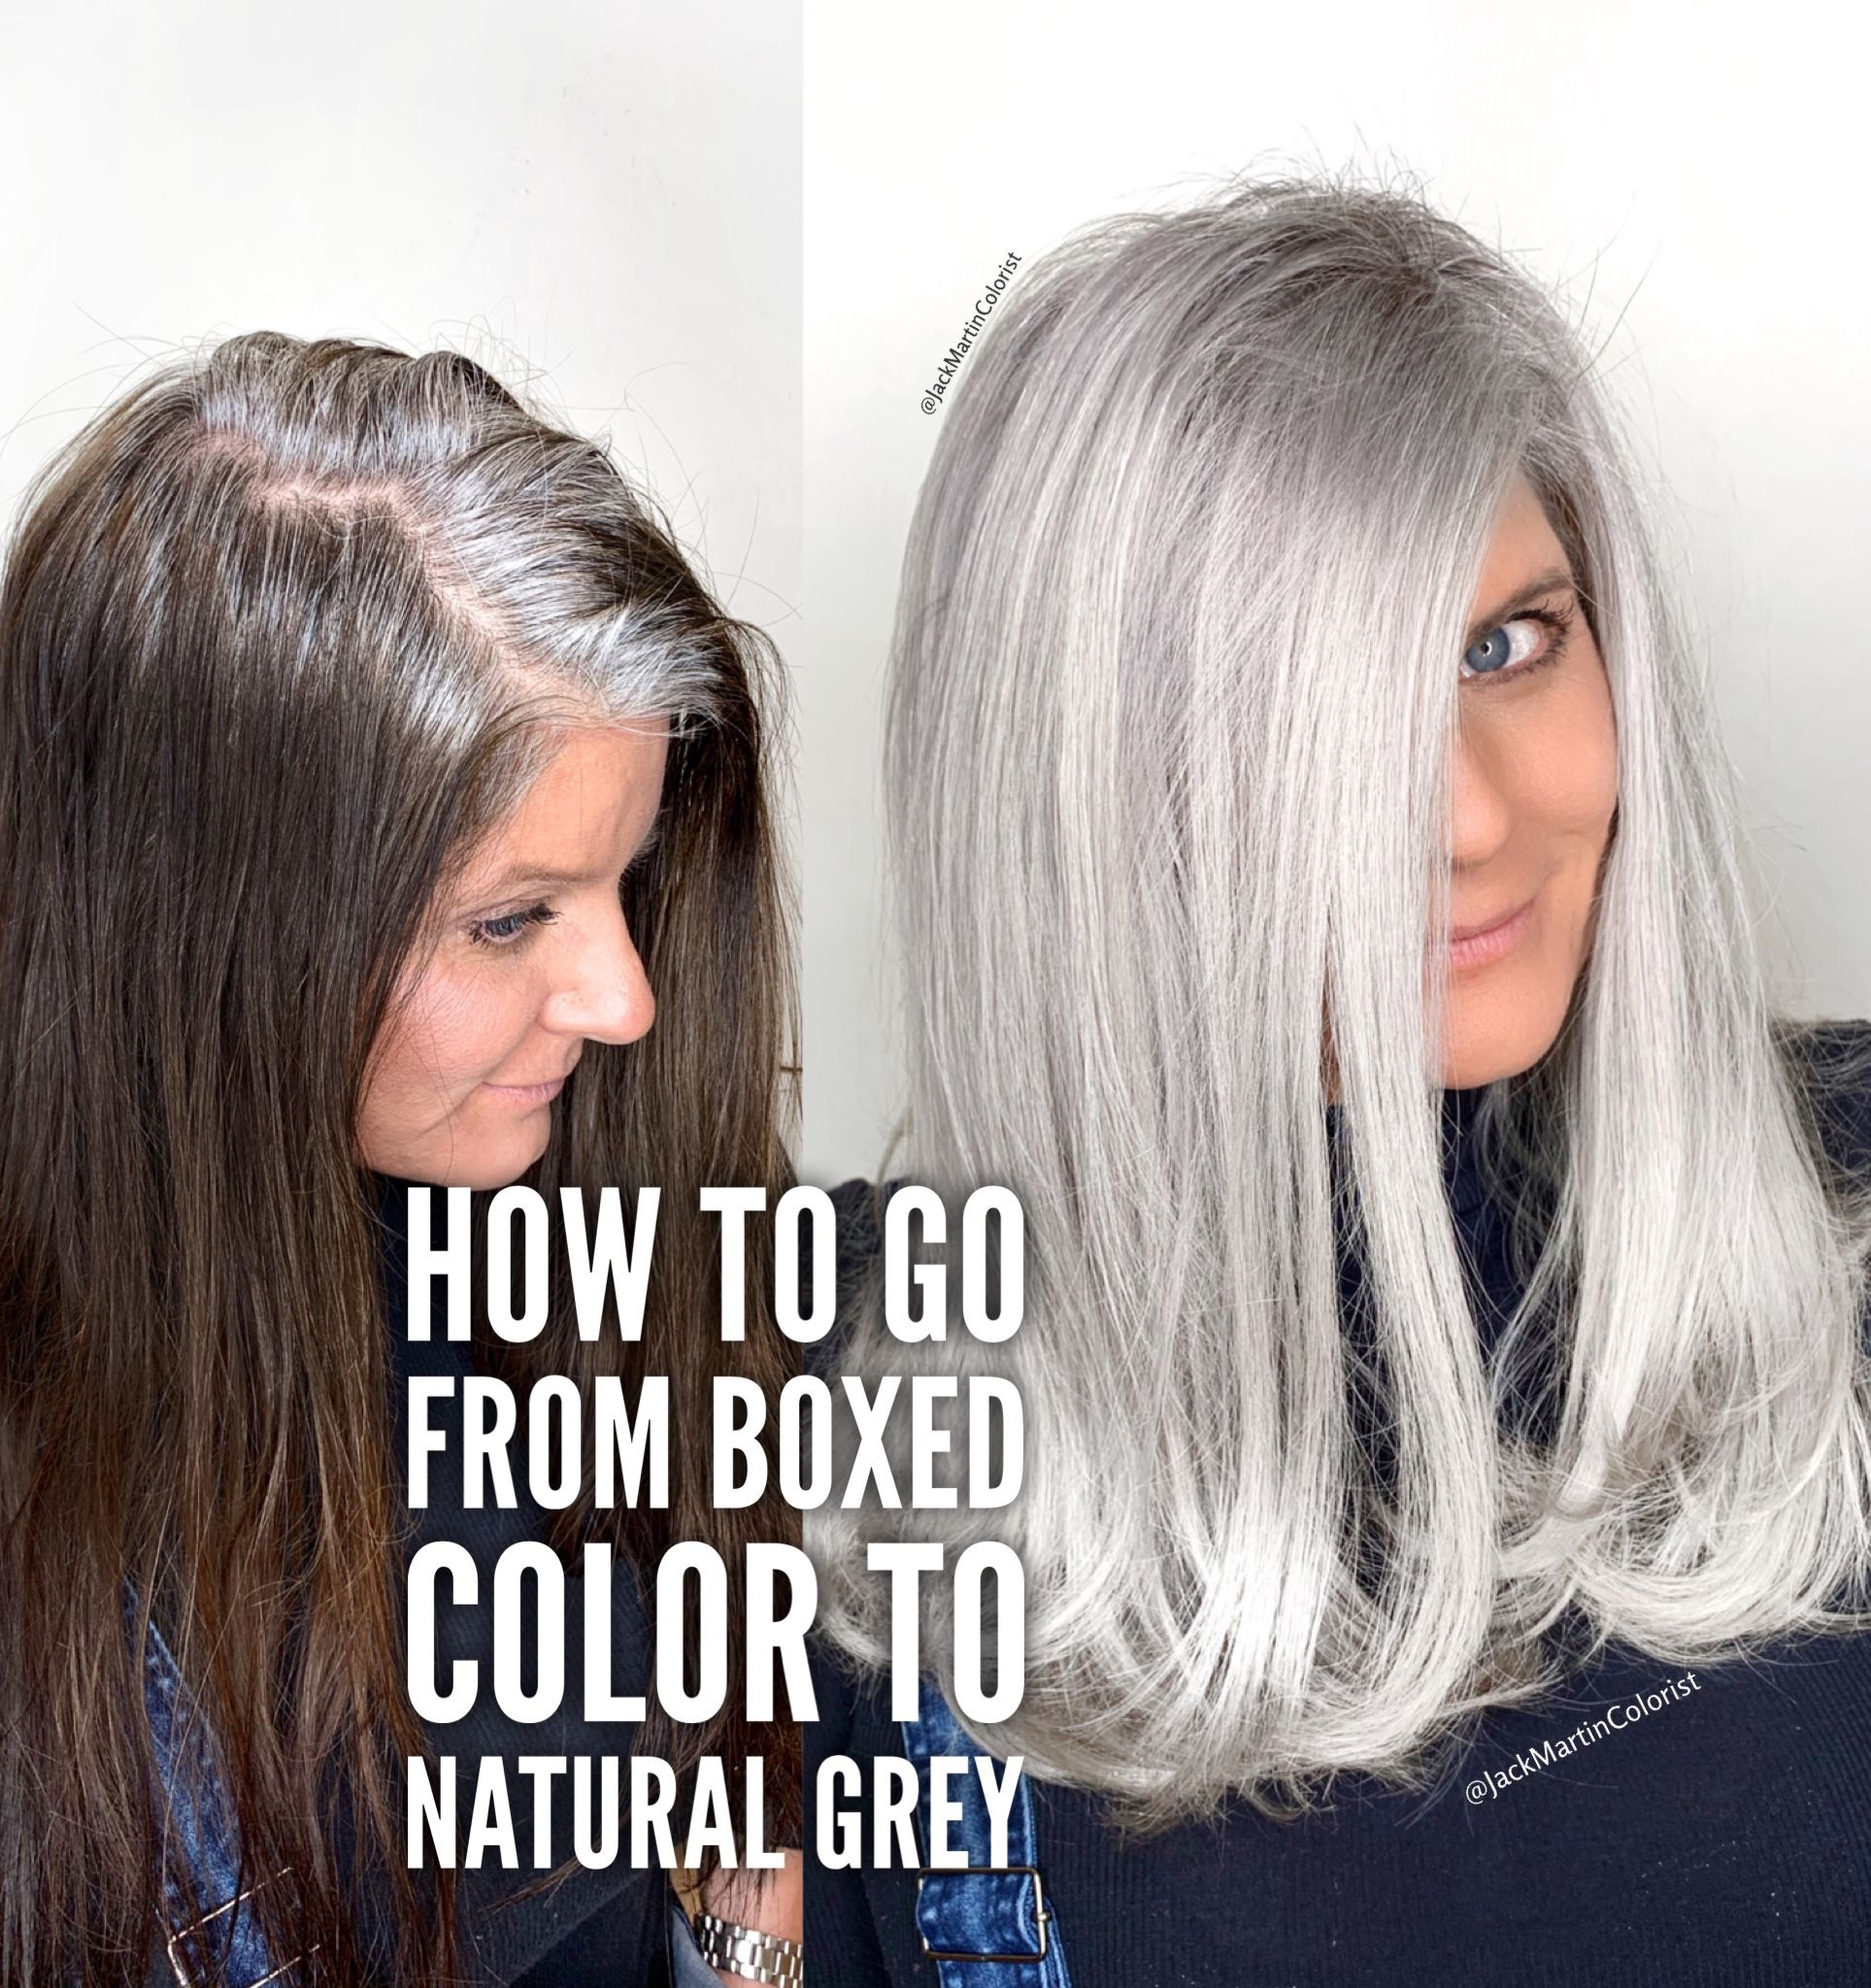 How To Go From Boxed Color To Natural Grey Check The Link Below Gray Hair Highlights Grey Hair Dye Transition To Gray Hair